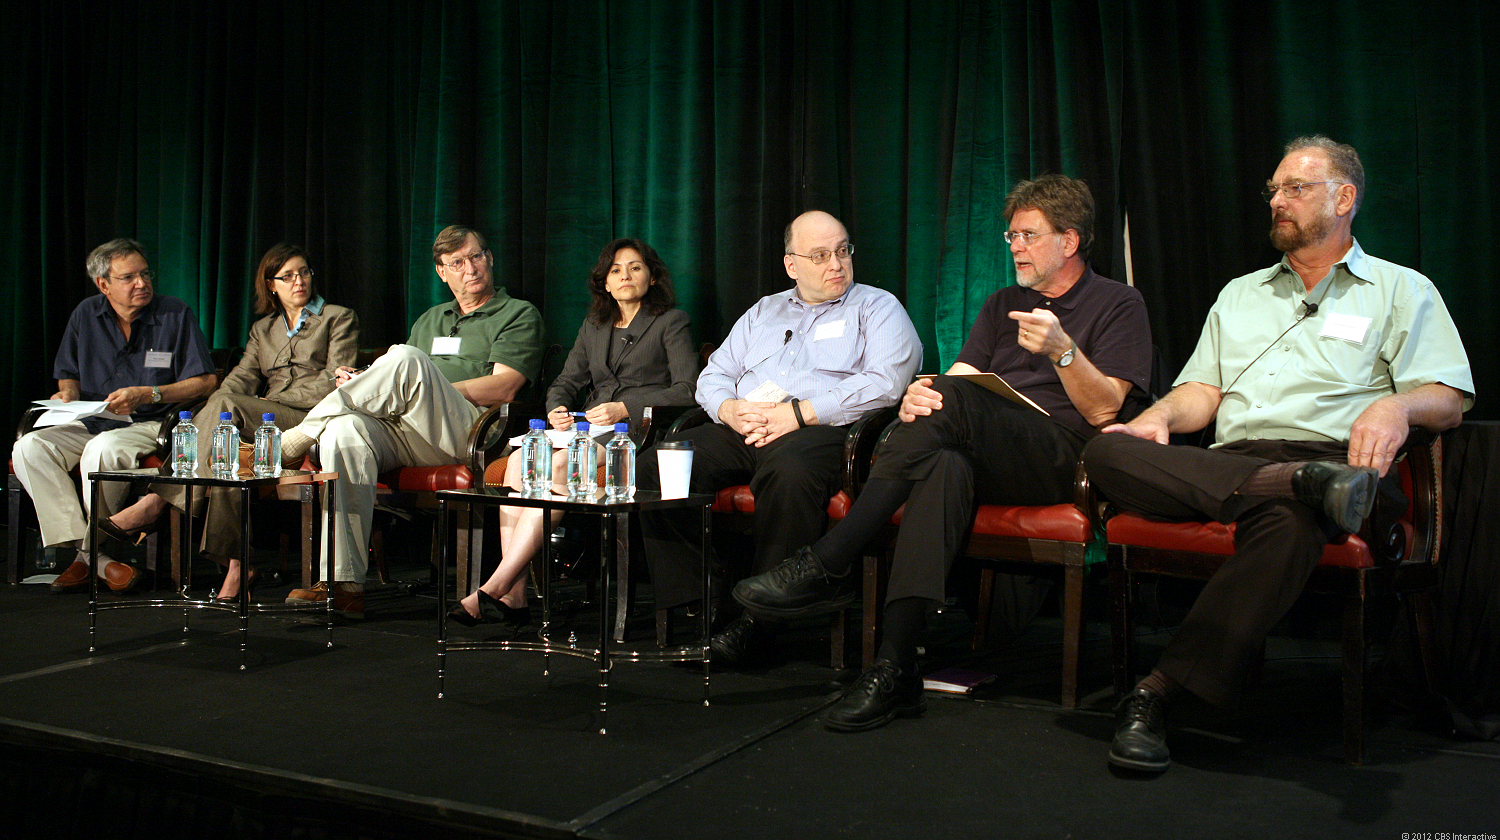 """Former FTC chairman William Kovacic, second from right, says government litigators get """"extra credit for big cases."""""""